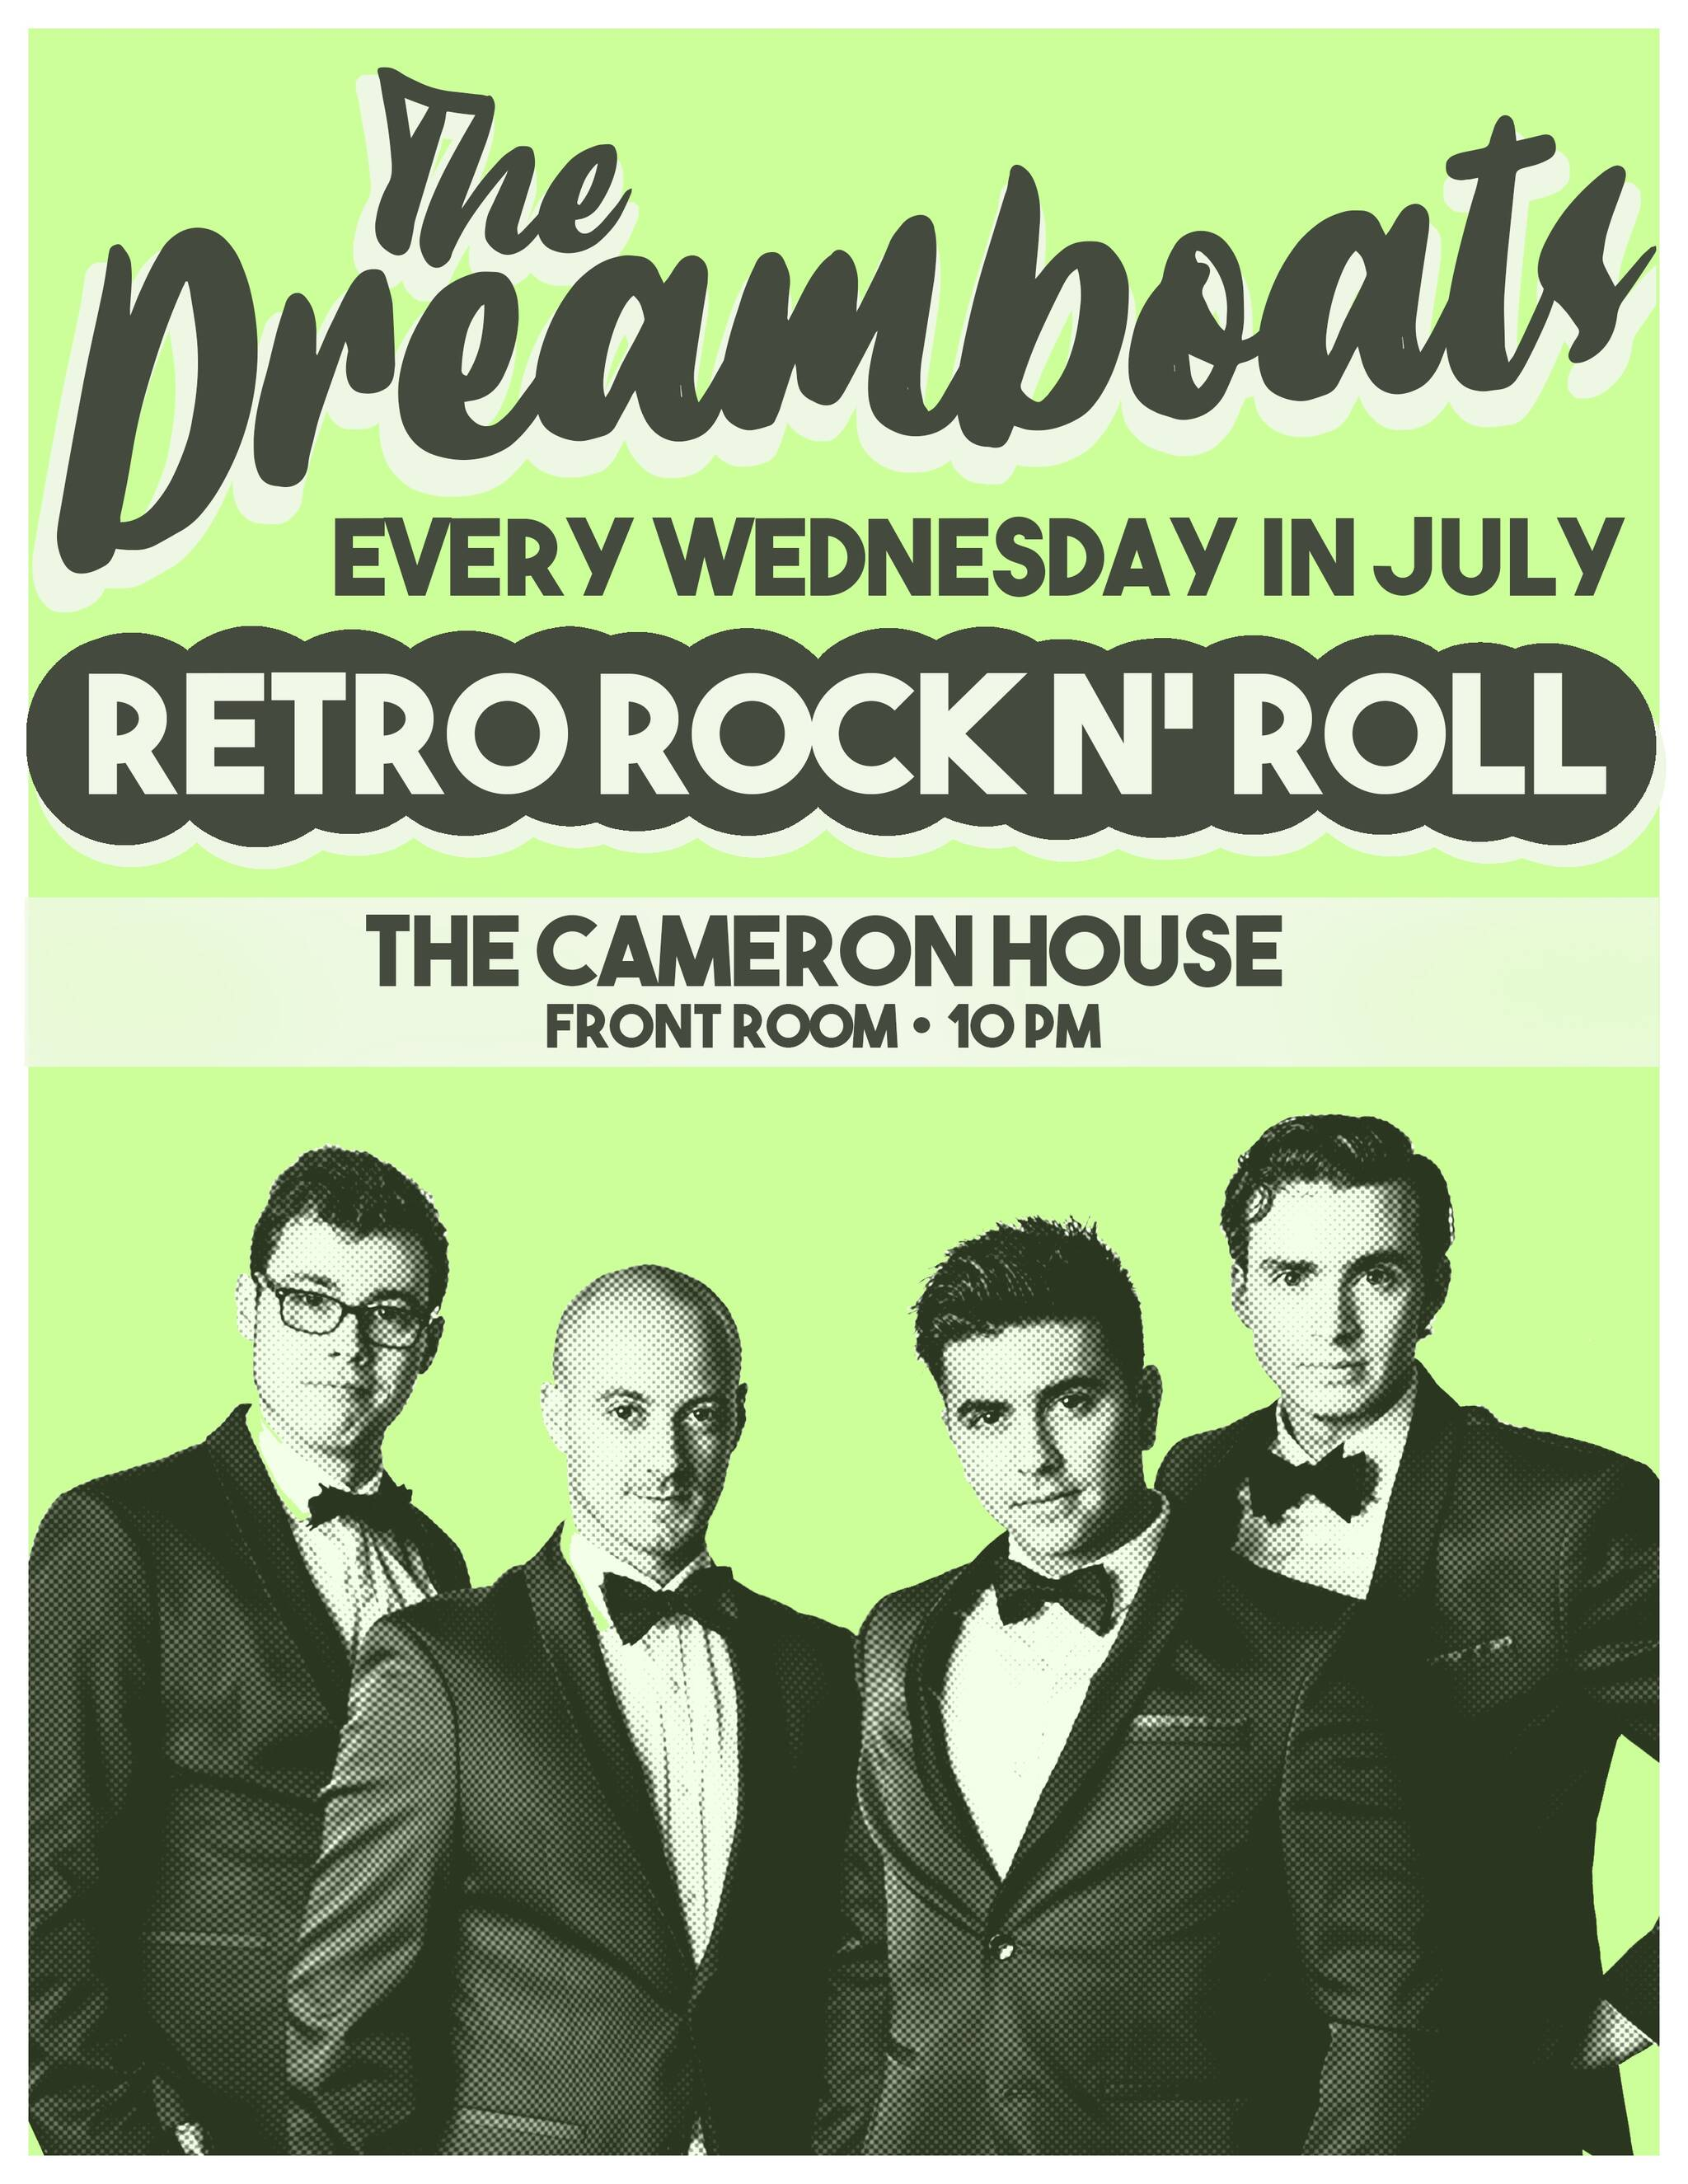 Live 50s & 60s Rock n' Roll Party with The Dreamboats every